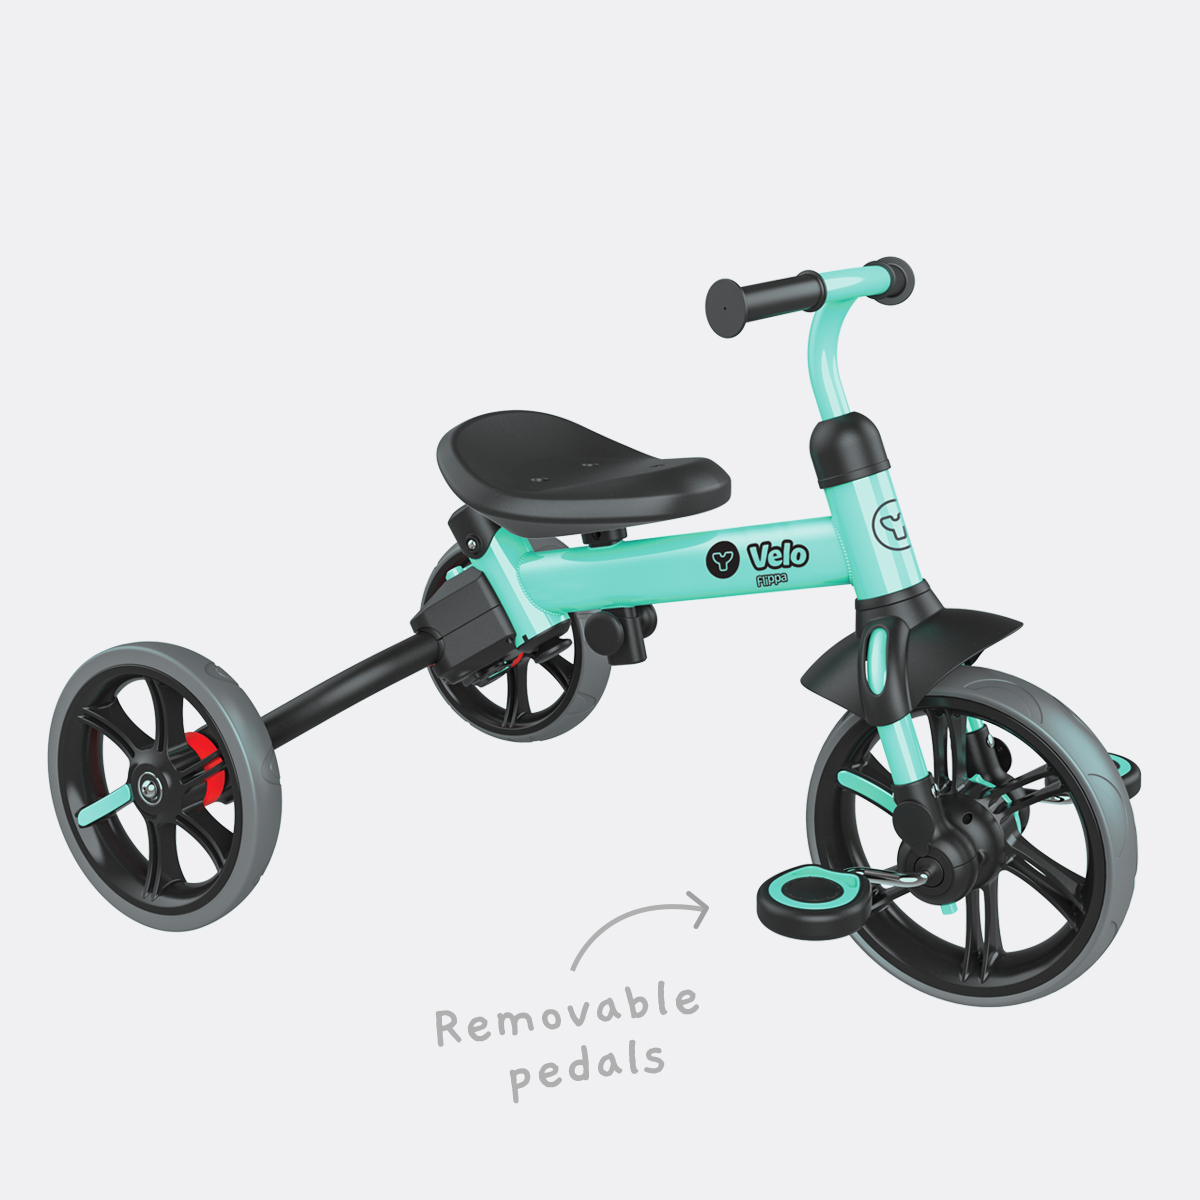 Removeable pedals